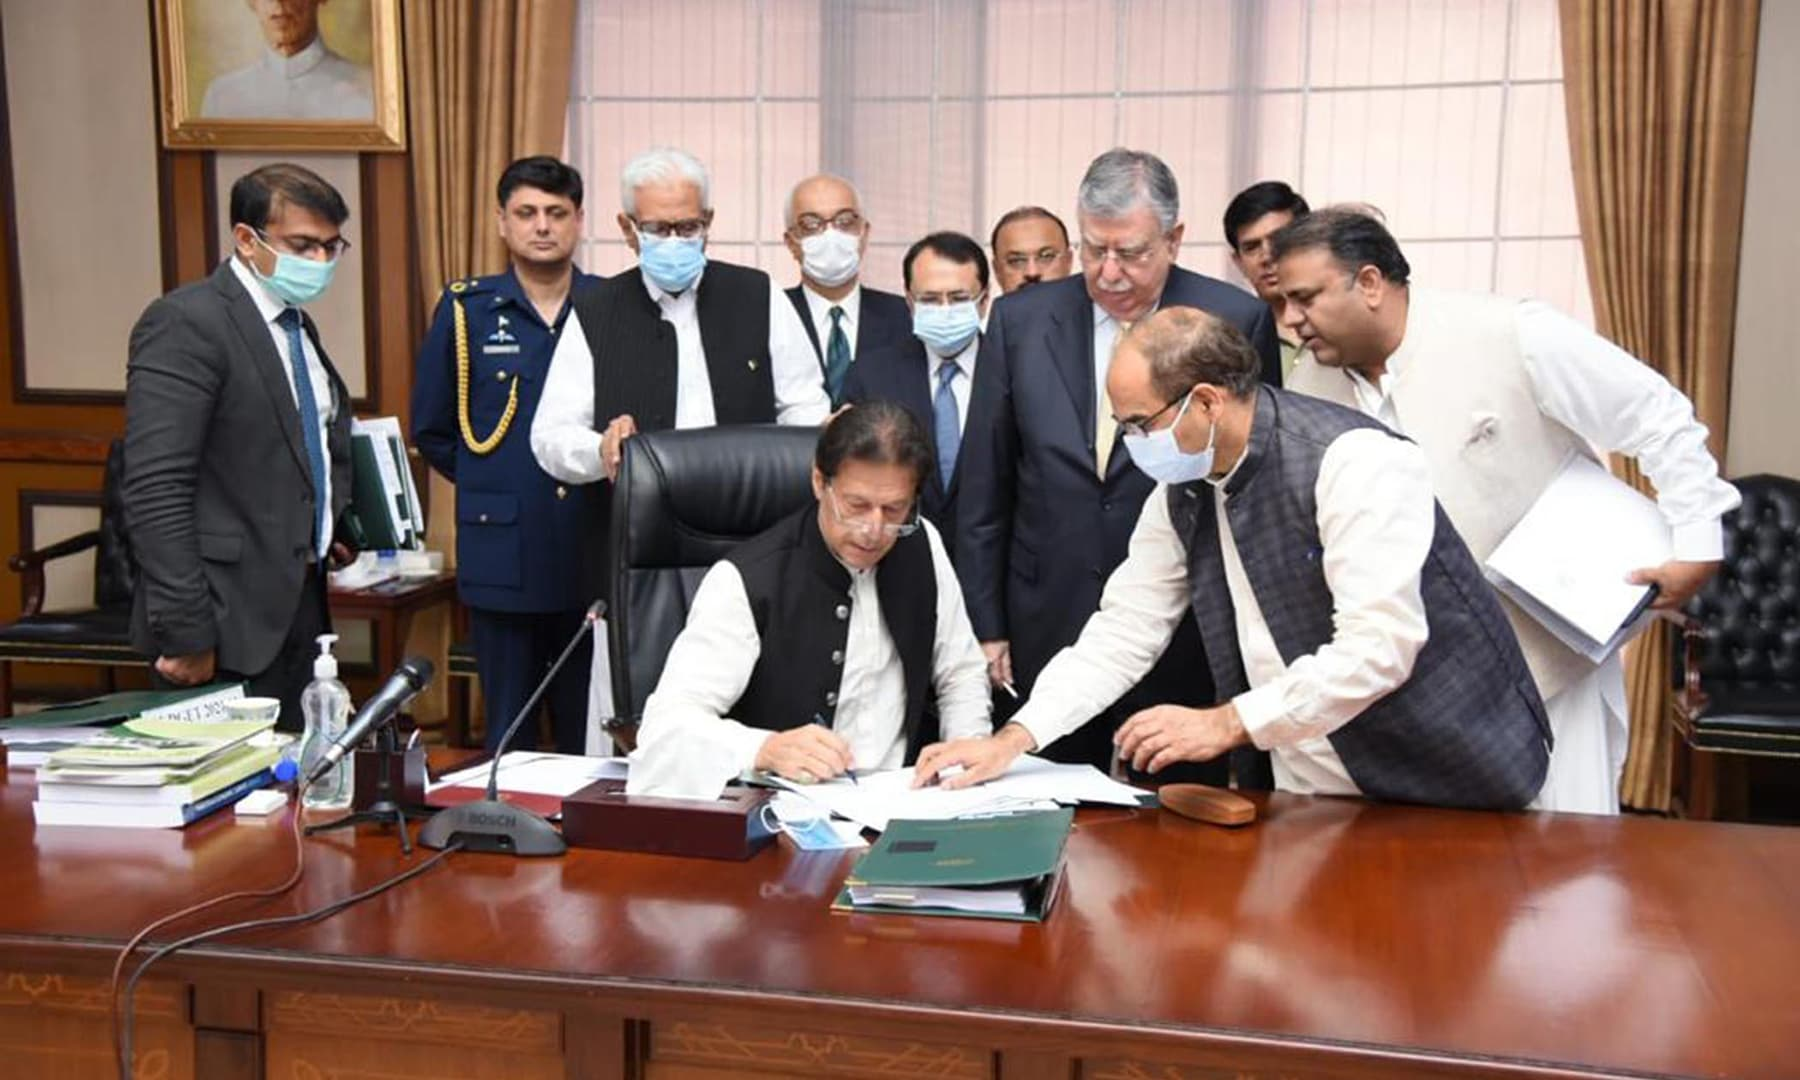 Prime Minister Imran Khan signs the Budgetary Proposals for FY2022 during a meeting of the federal cabinet in Islamabad on Friday. — PID